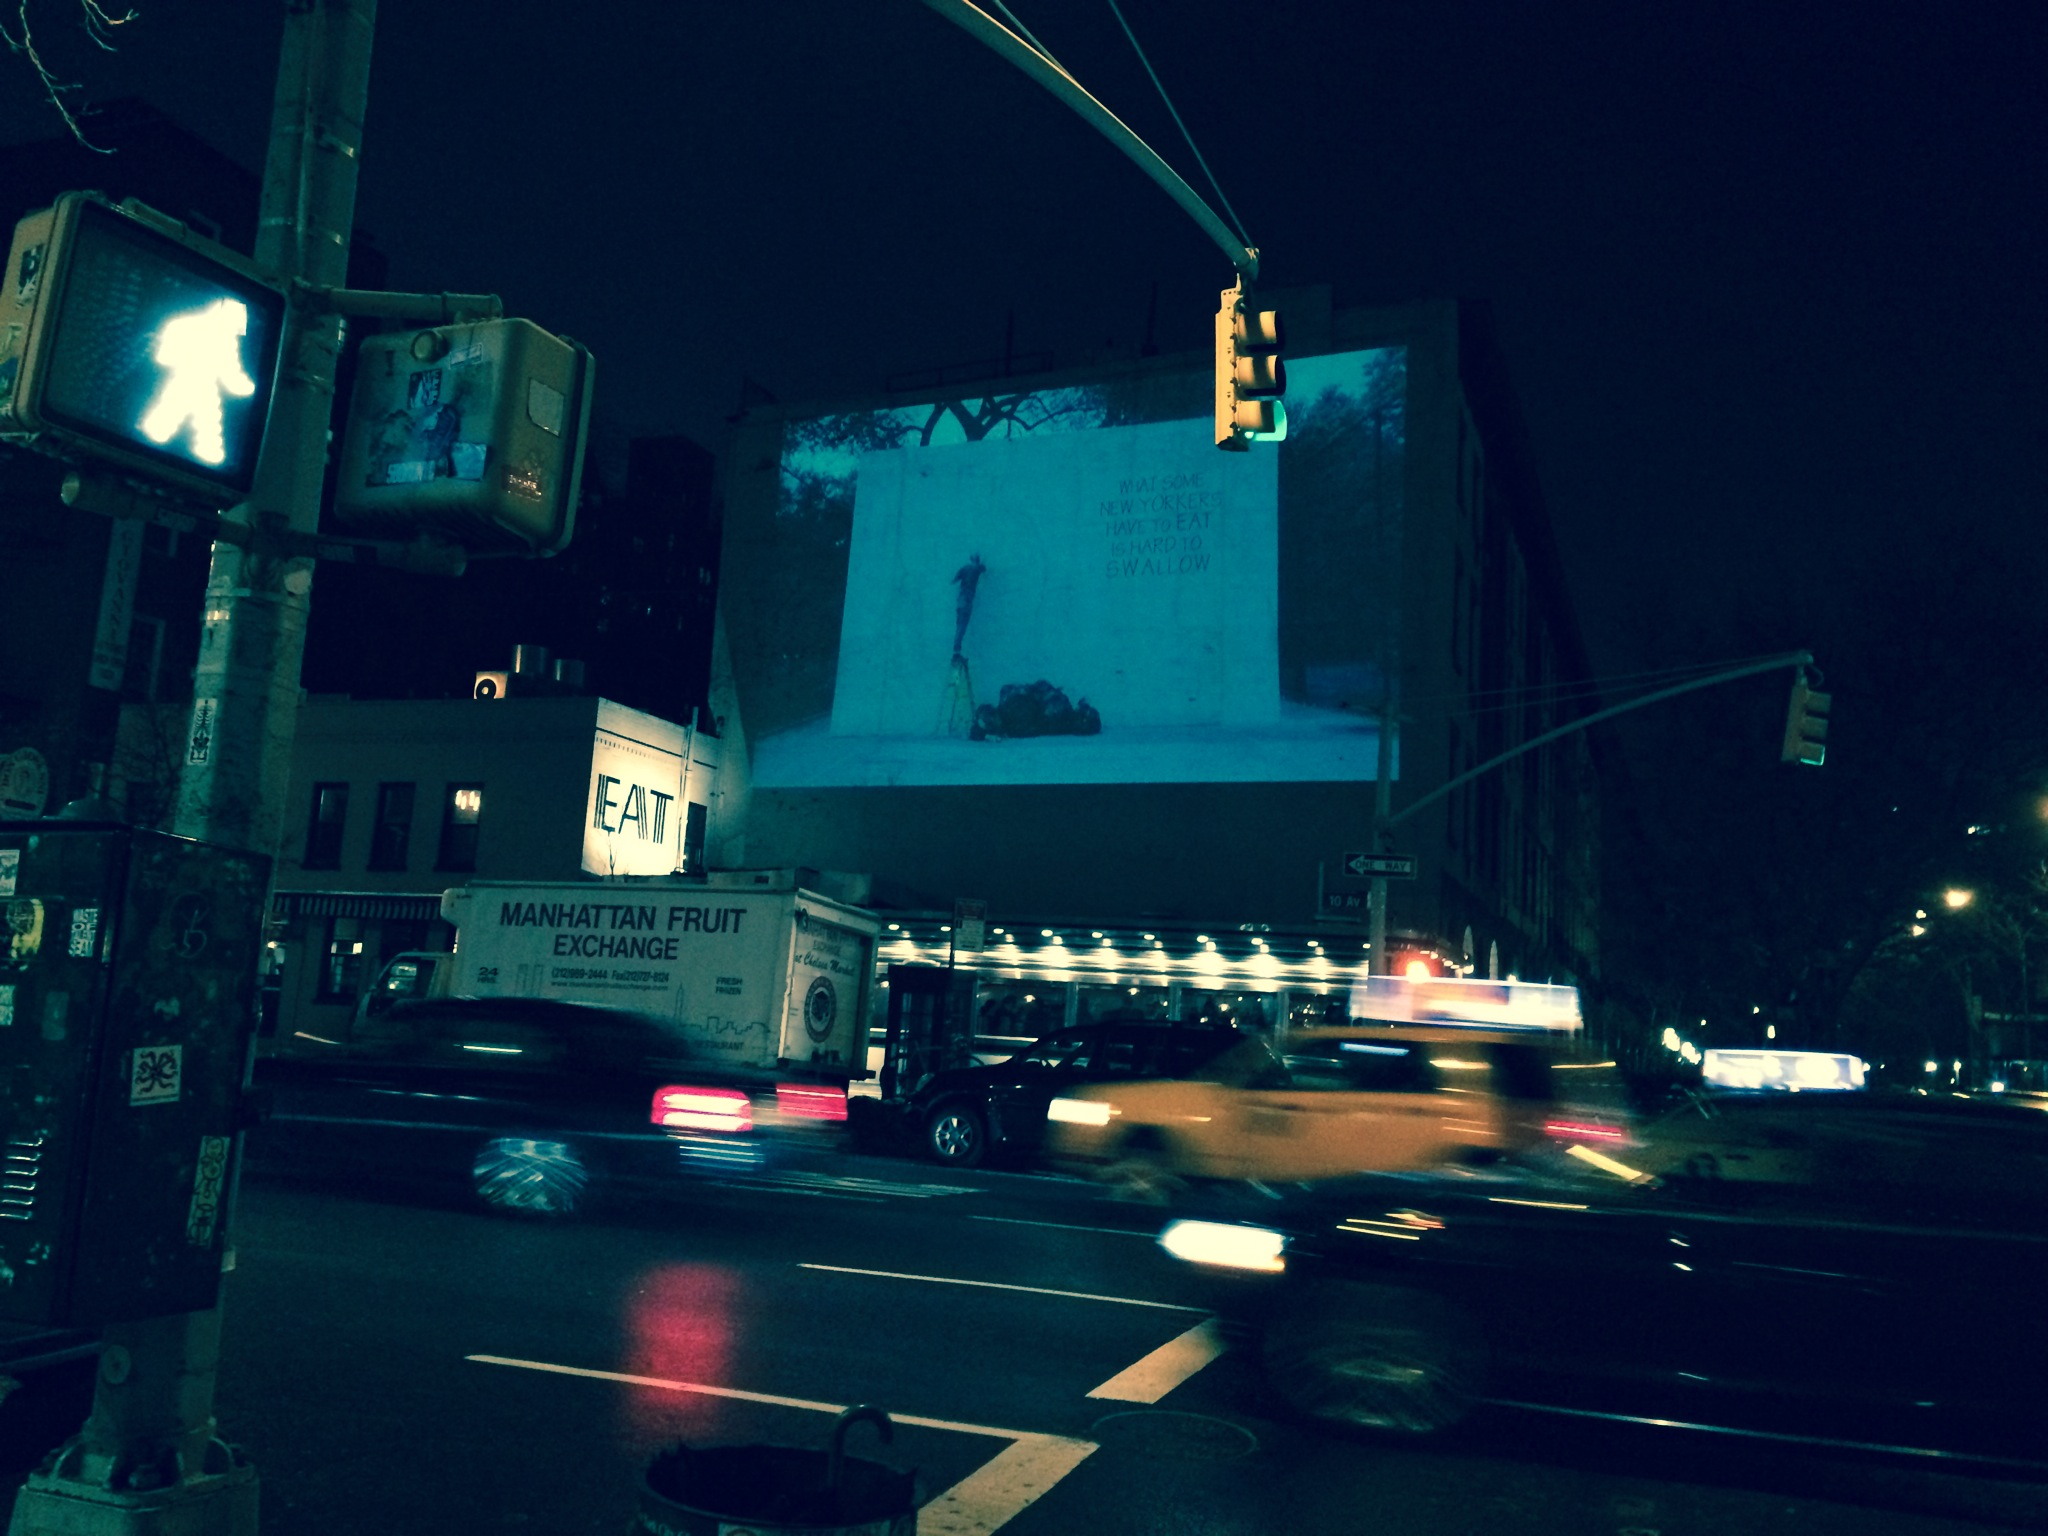 Wall Projections | Chelsea, Upper West side, Midtown and SOHO